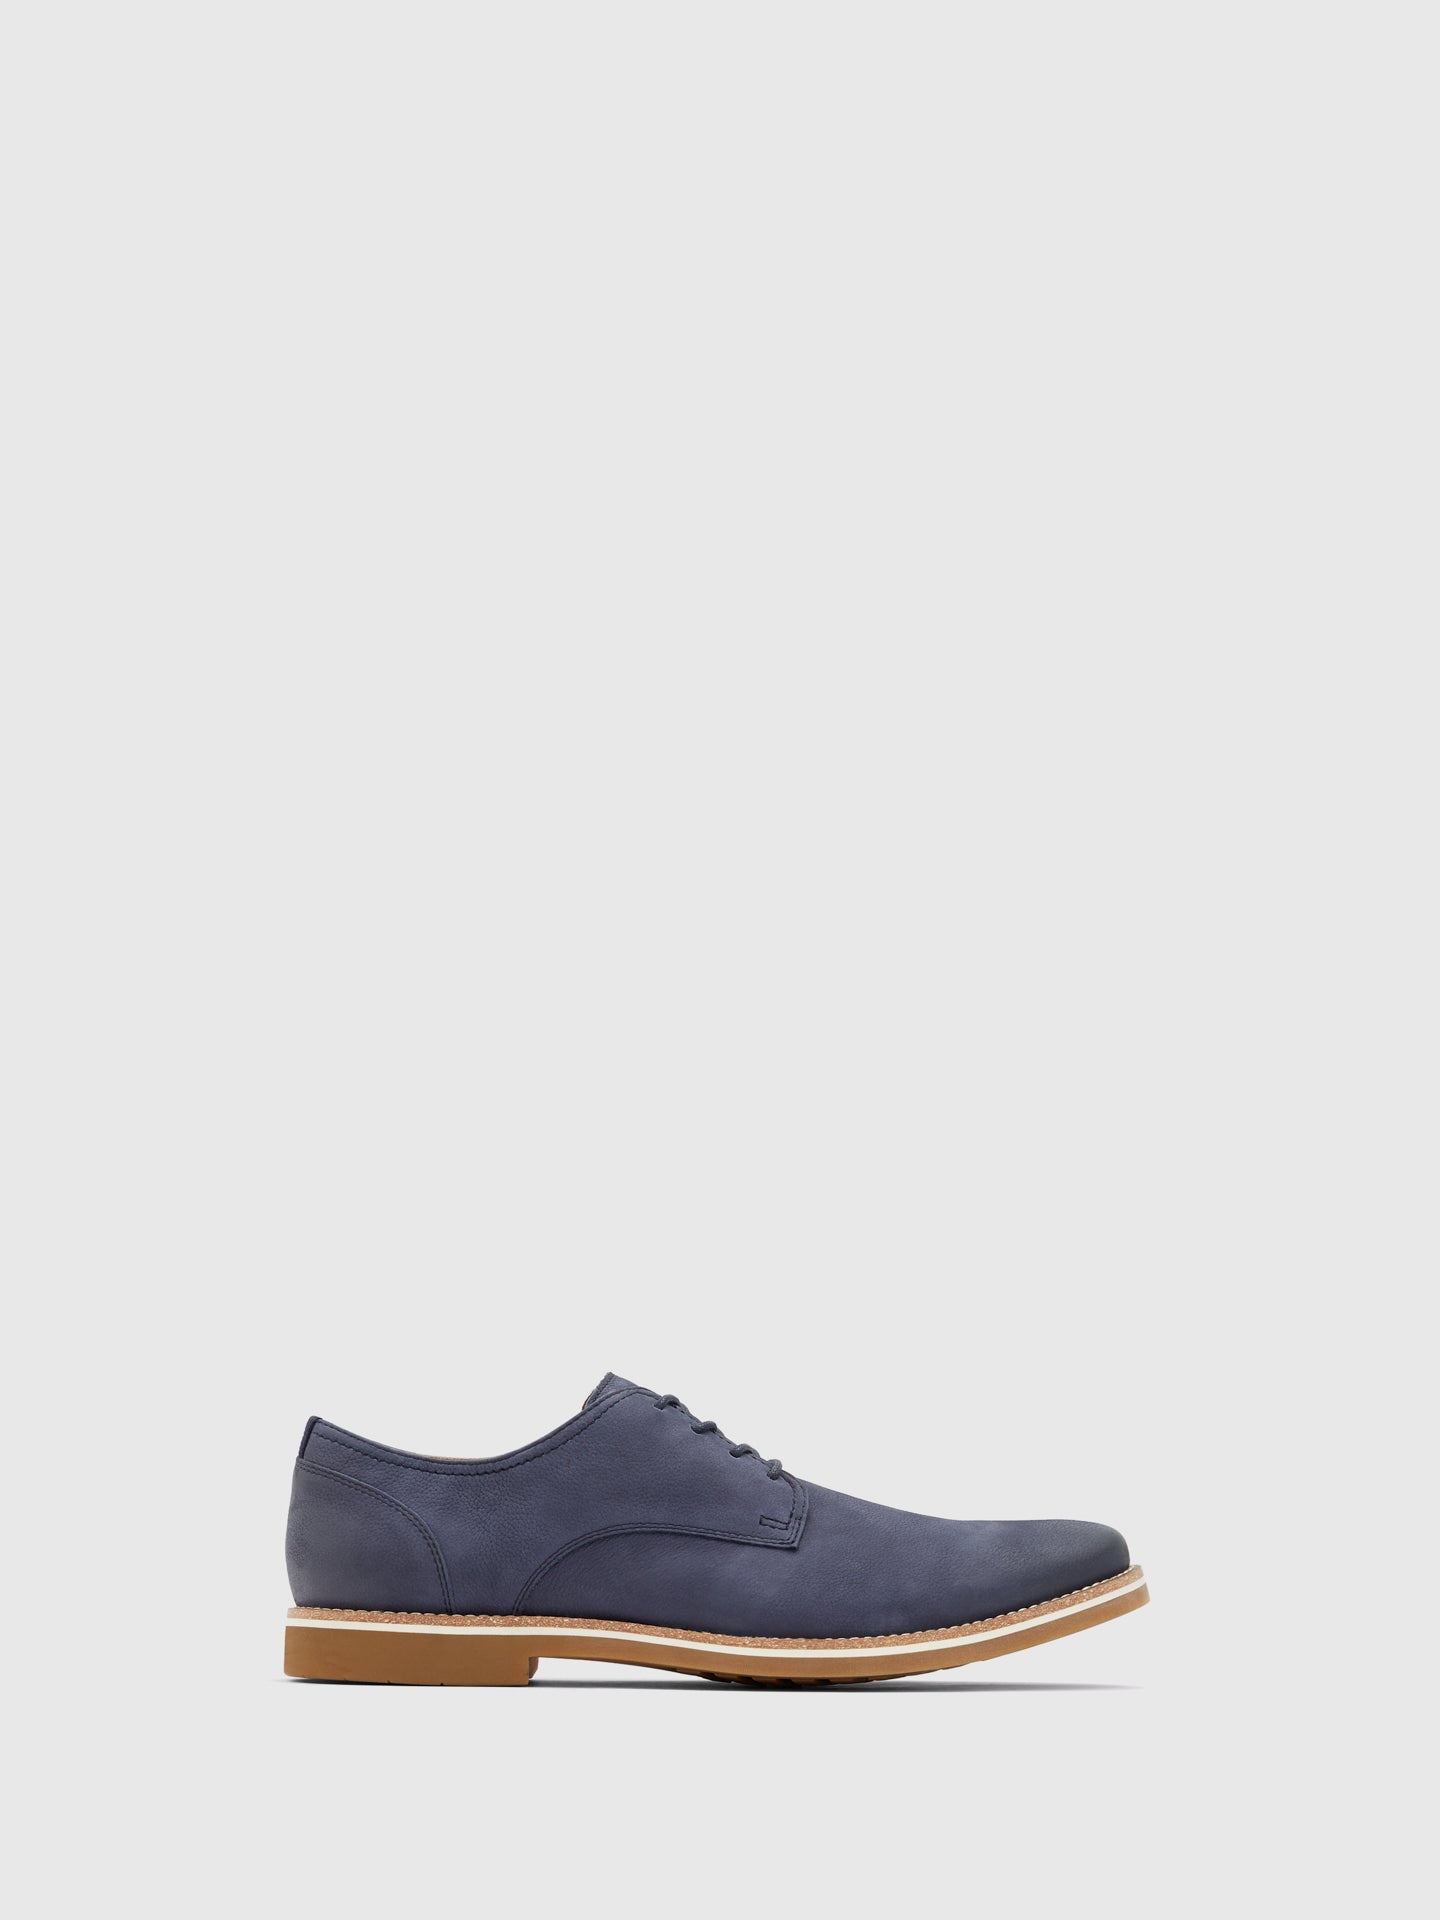 Aldo Blue Lace-up Shoes